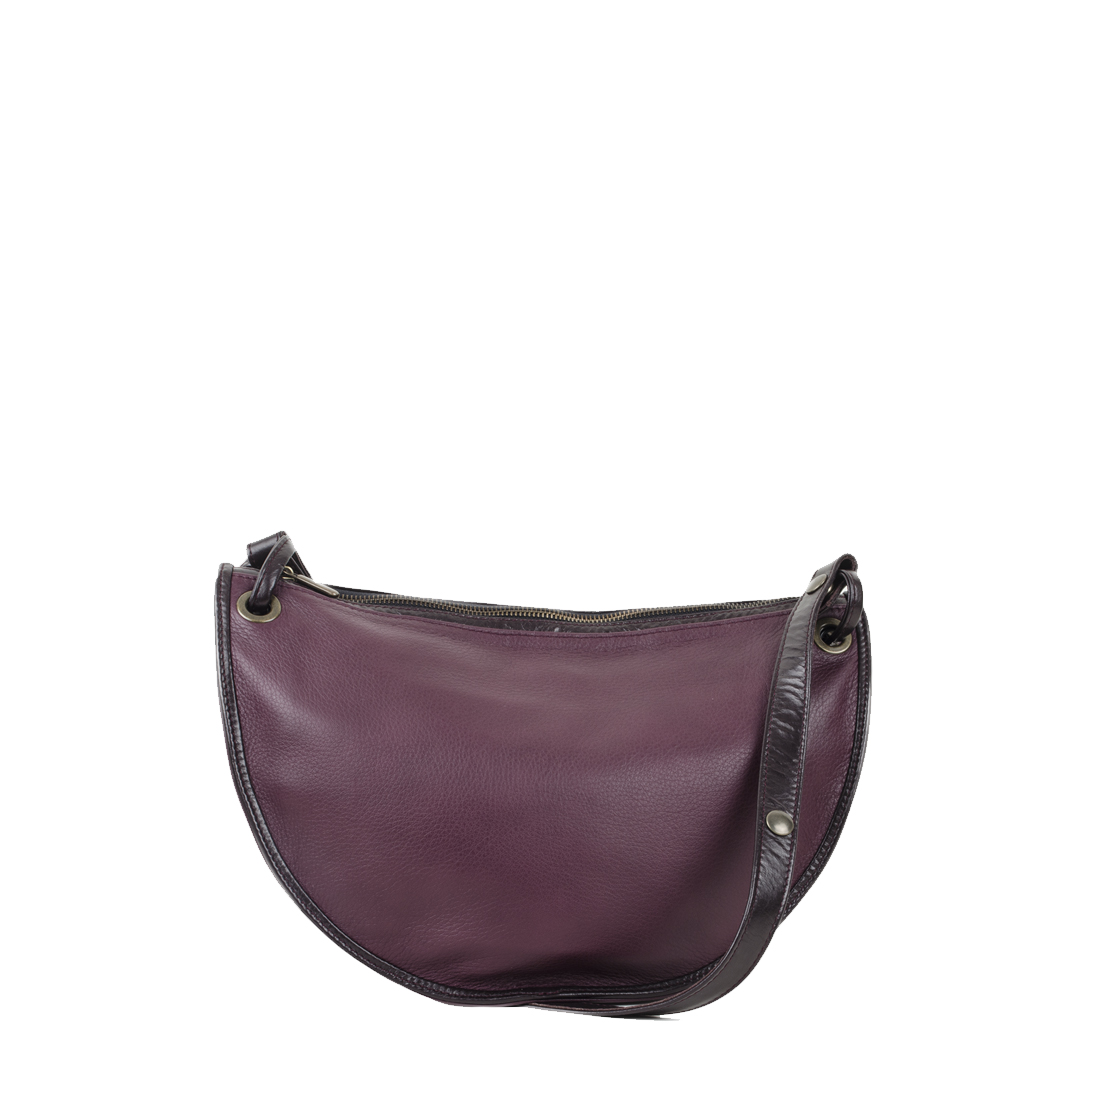 Rachel Plum Leather Across Body Bag